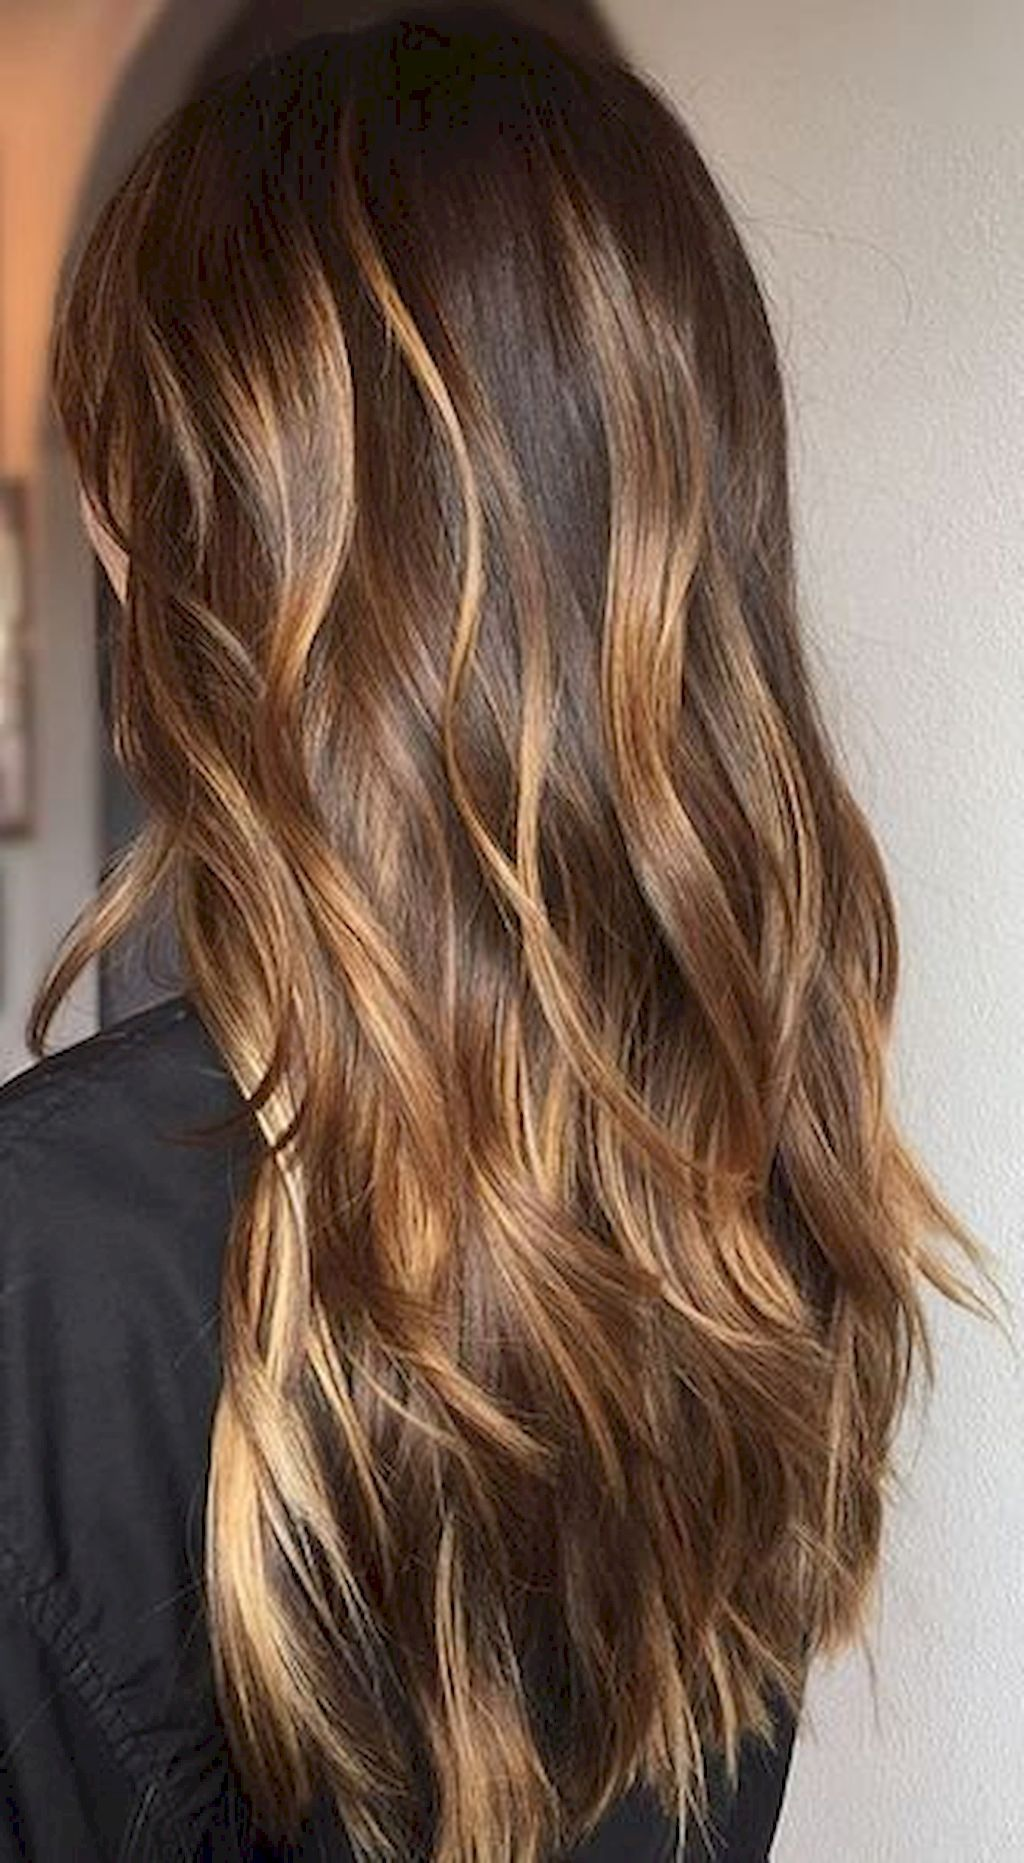 Gorgeous 75+ Hottest Balayage Hair Color Ideas for Brunettes  https://bitecloth.com/2017/11/16/75-hottest-balayage-hair-color-ideas-brunettes/  | Honey hair color